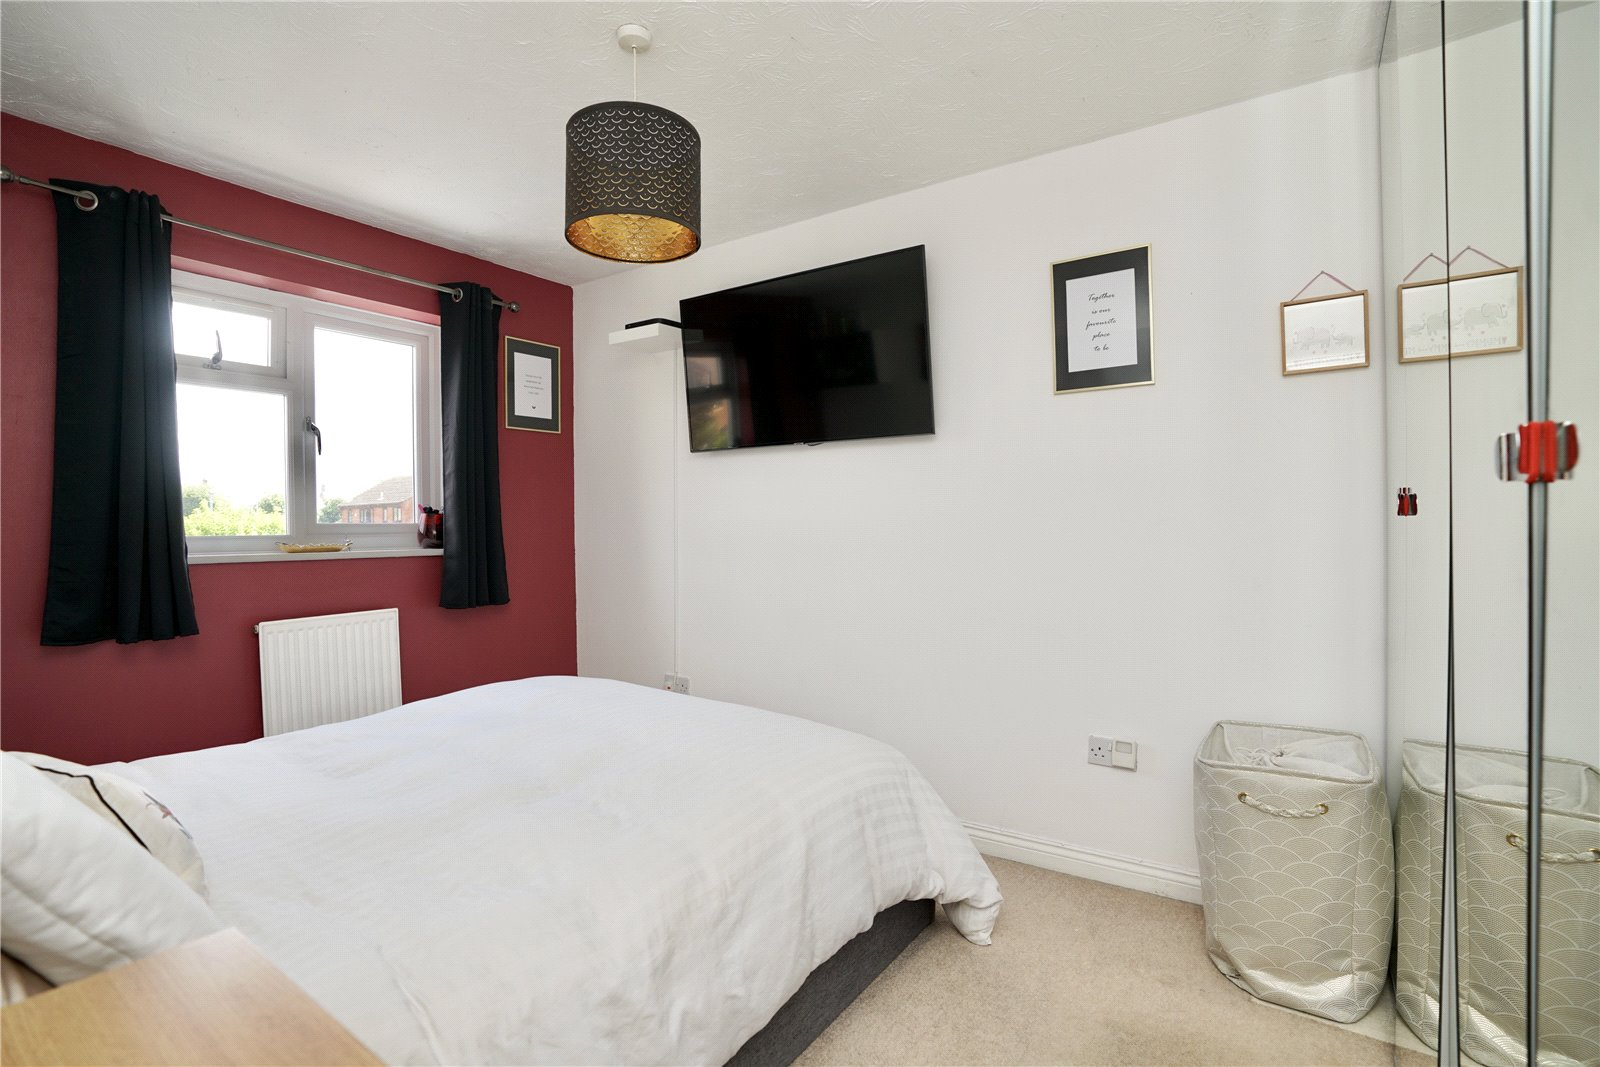 3 bed house for sale in Swift Close, St. Neots  - Property Image 10